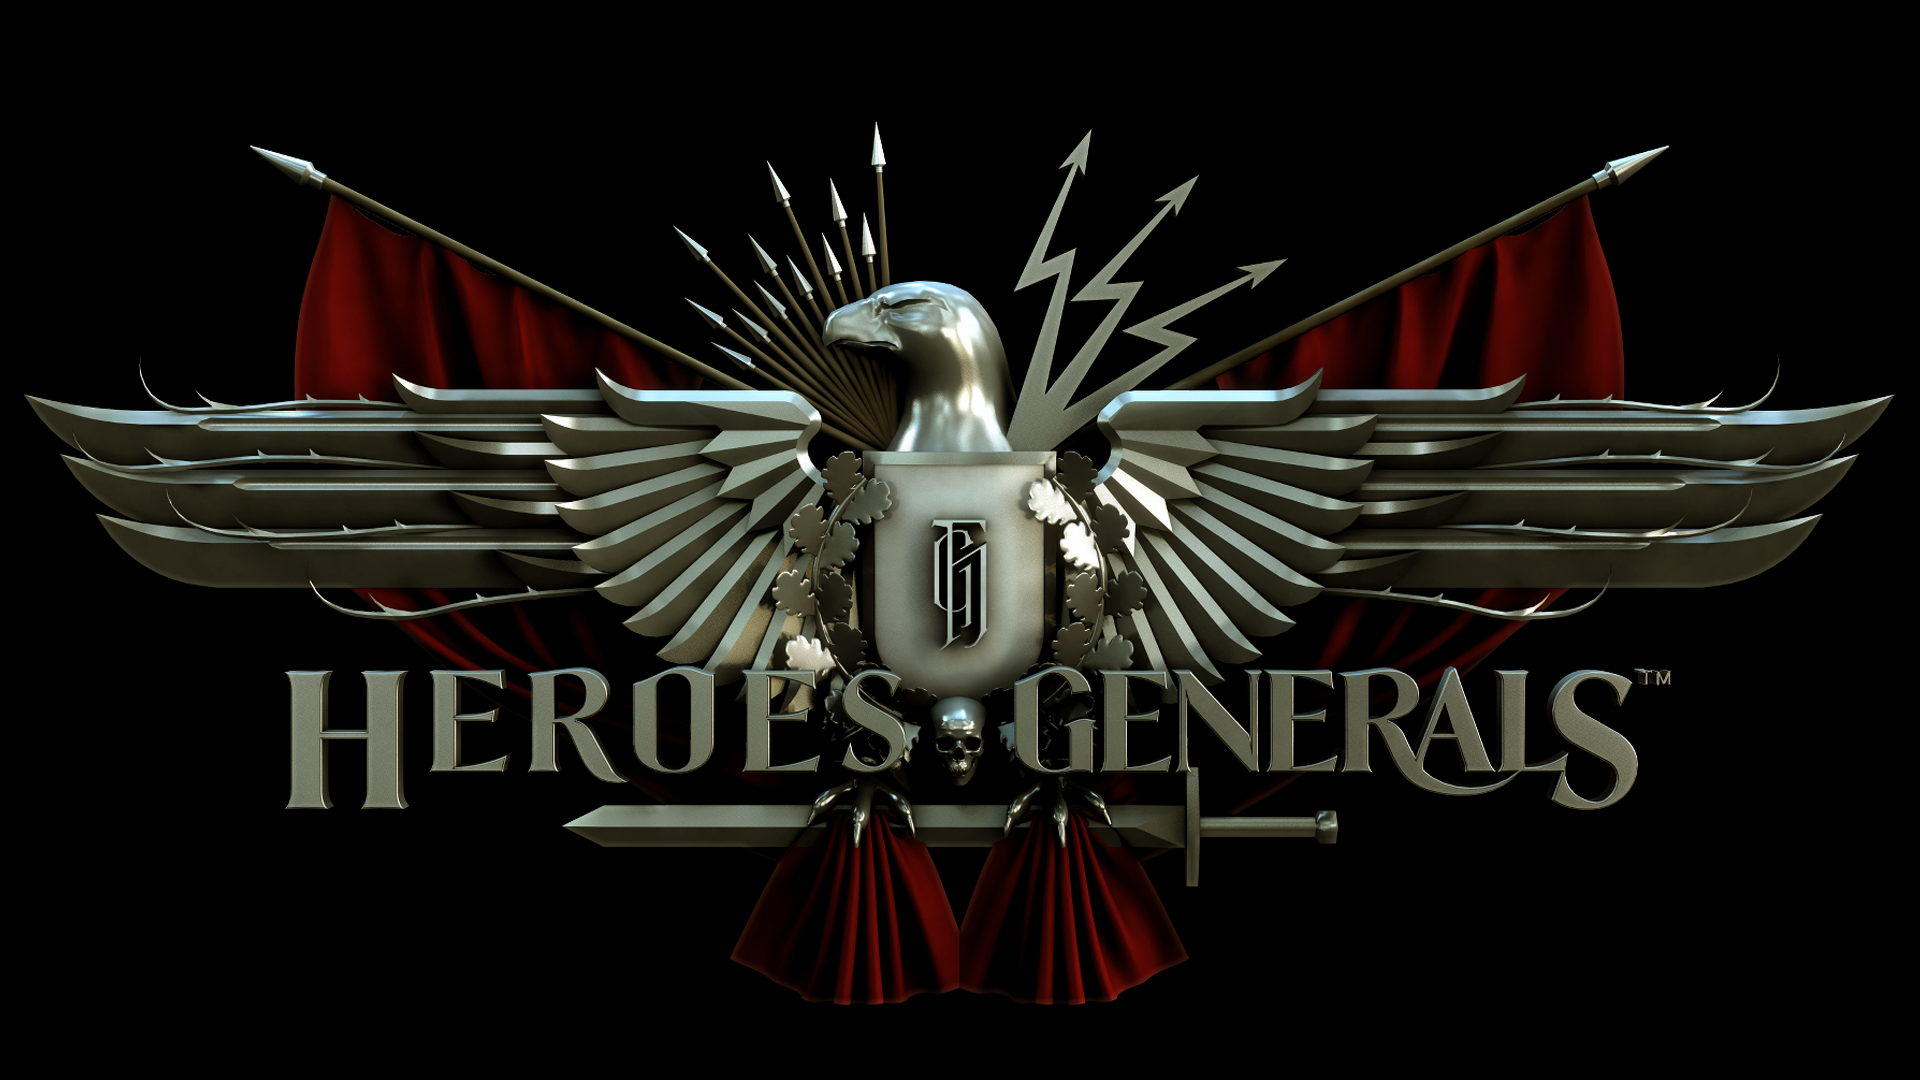 Heroes & Generals Backgrounds, Compatible - PC, Mobile, Gadgets| 1920x1080 px